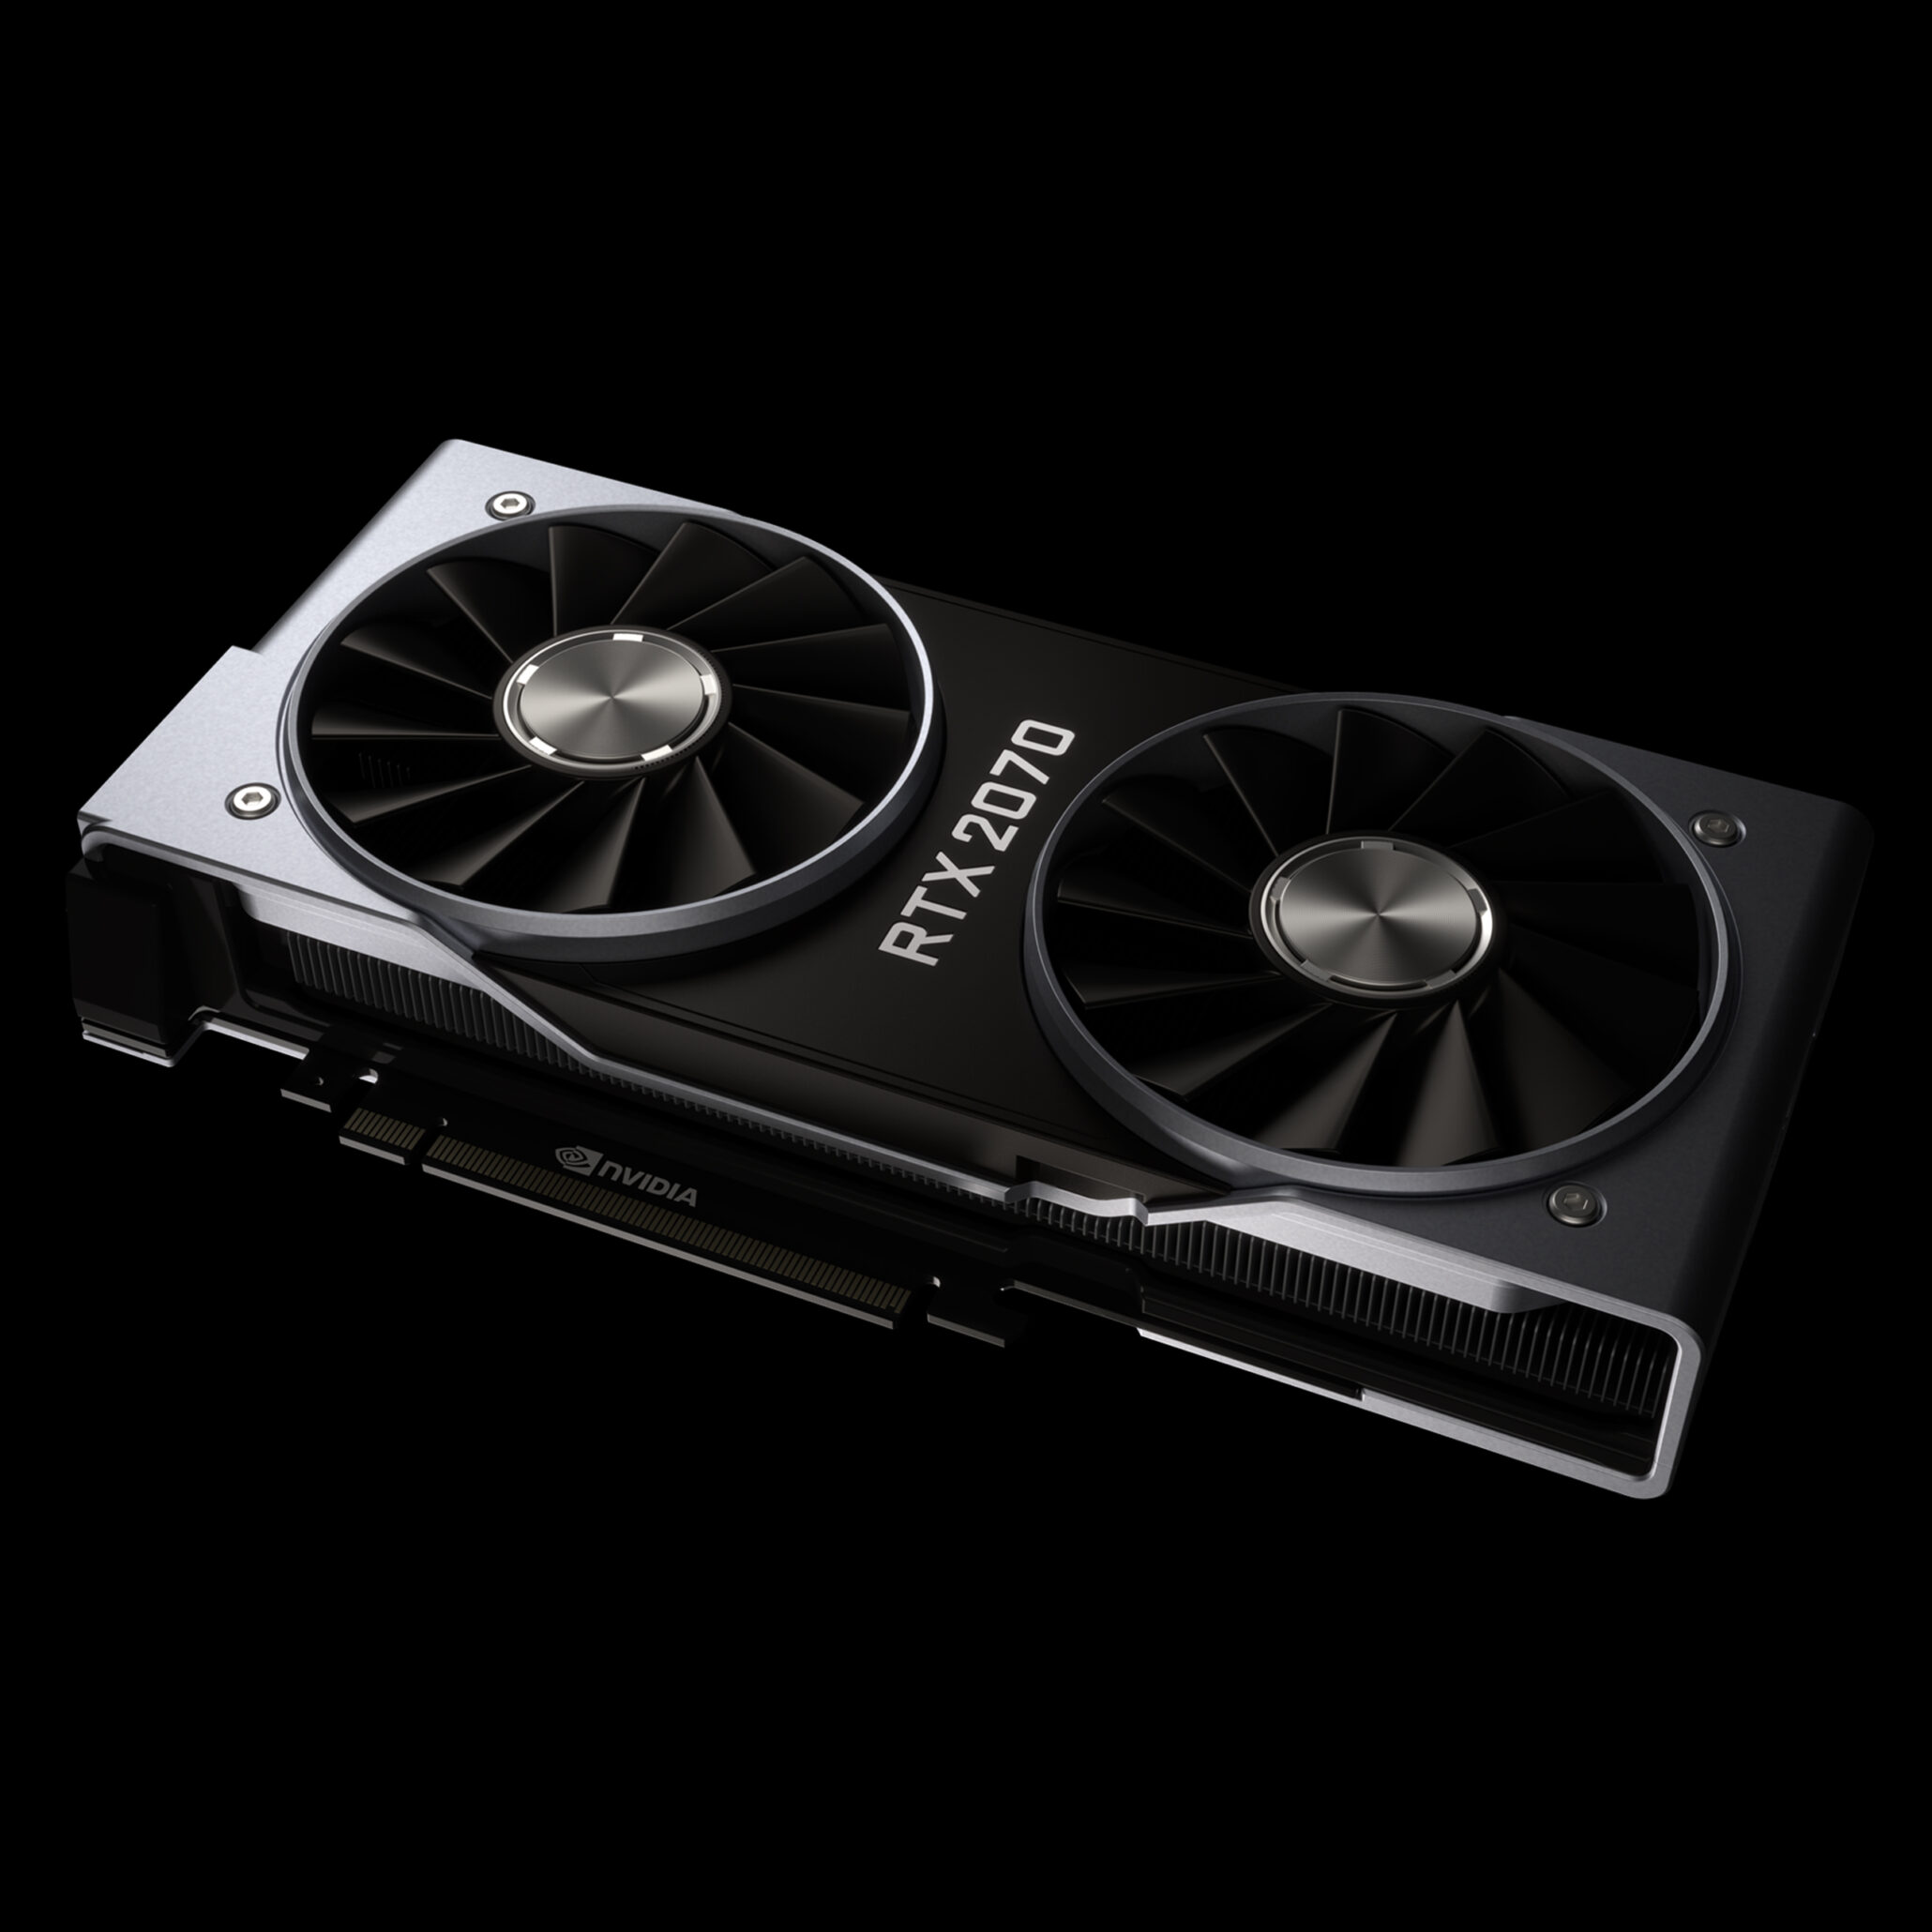 NVIDIA GeForce RTX 2070 Announced - Amazing Value For Gamers